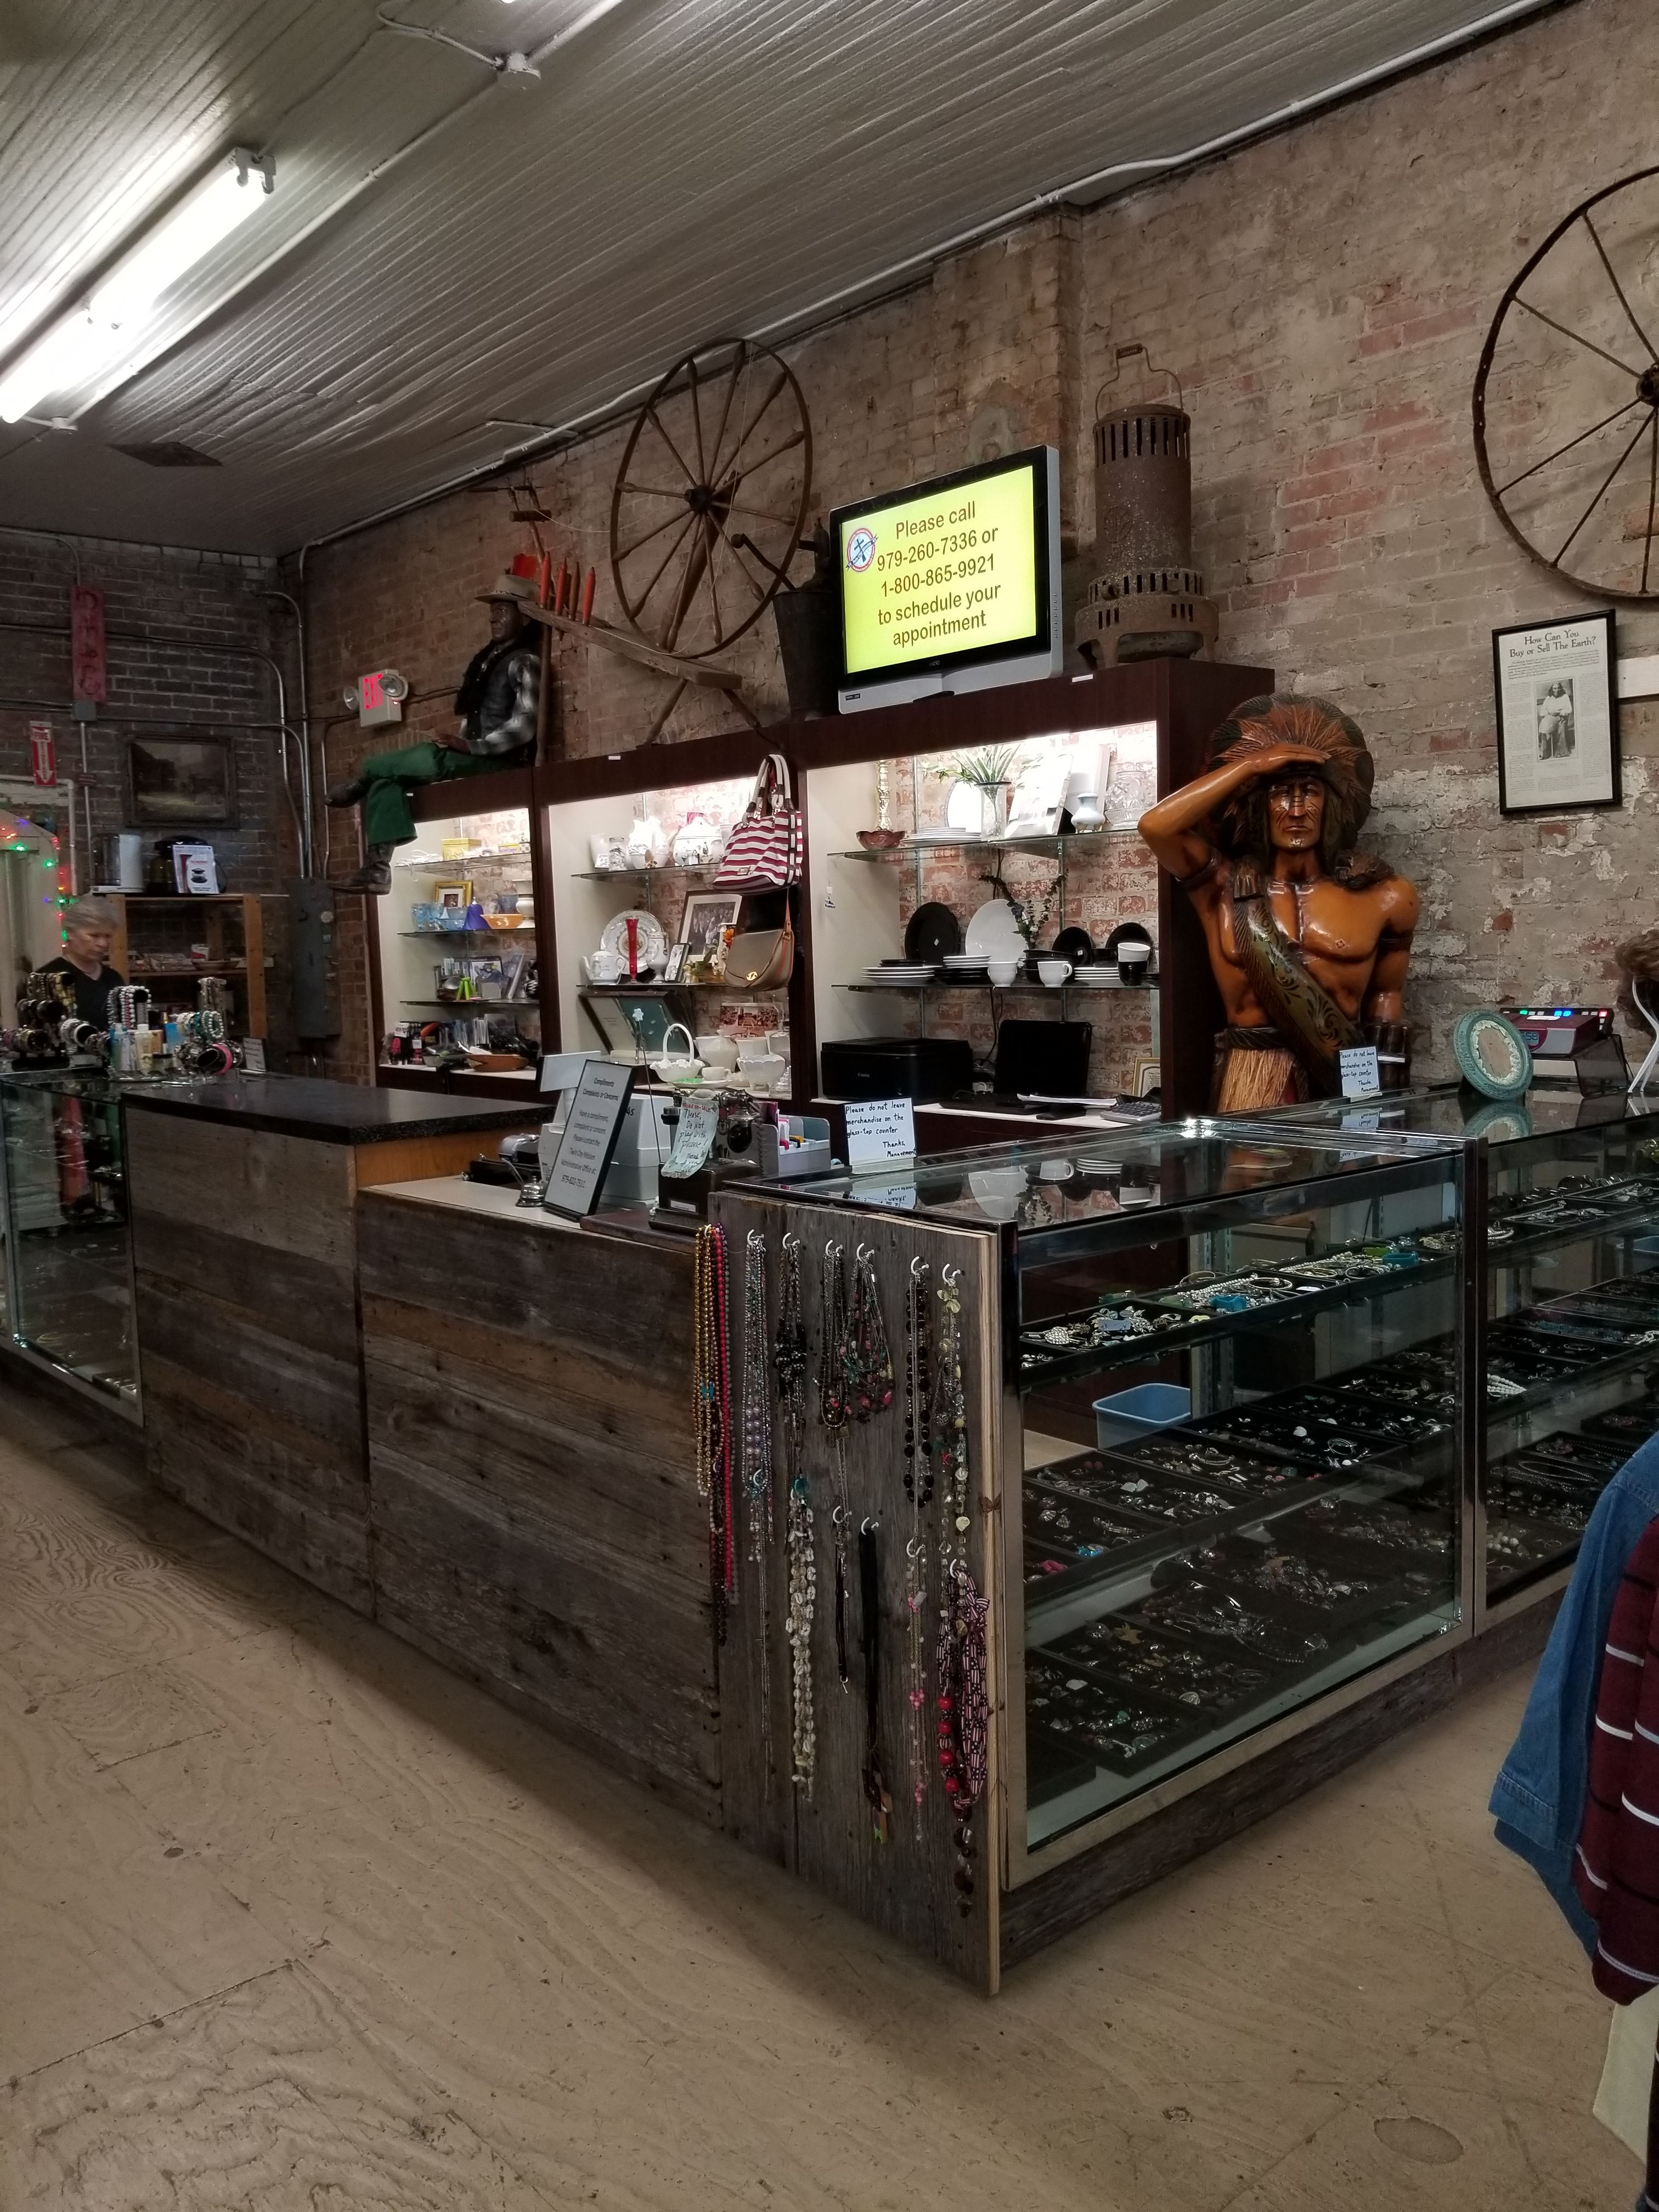 36+ Jewelry stores in bryan college station information